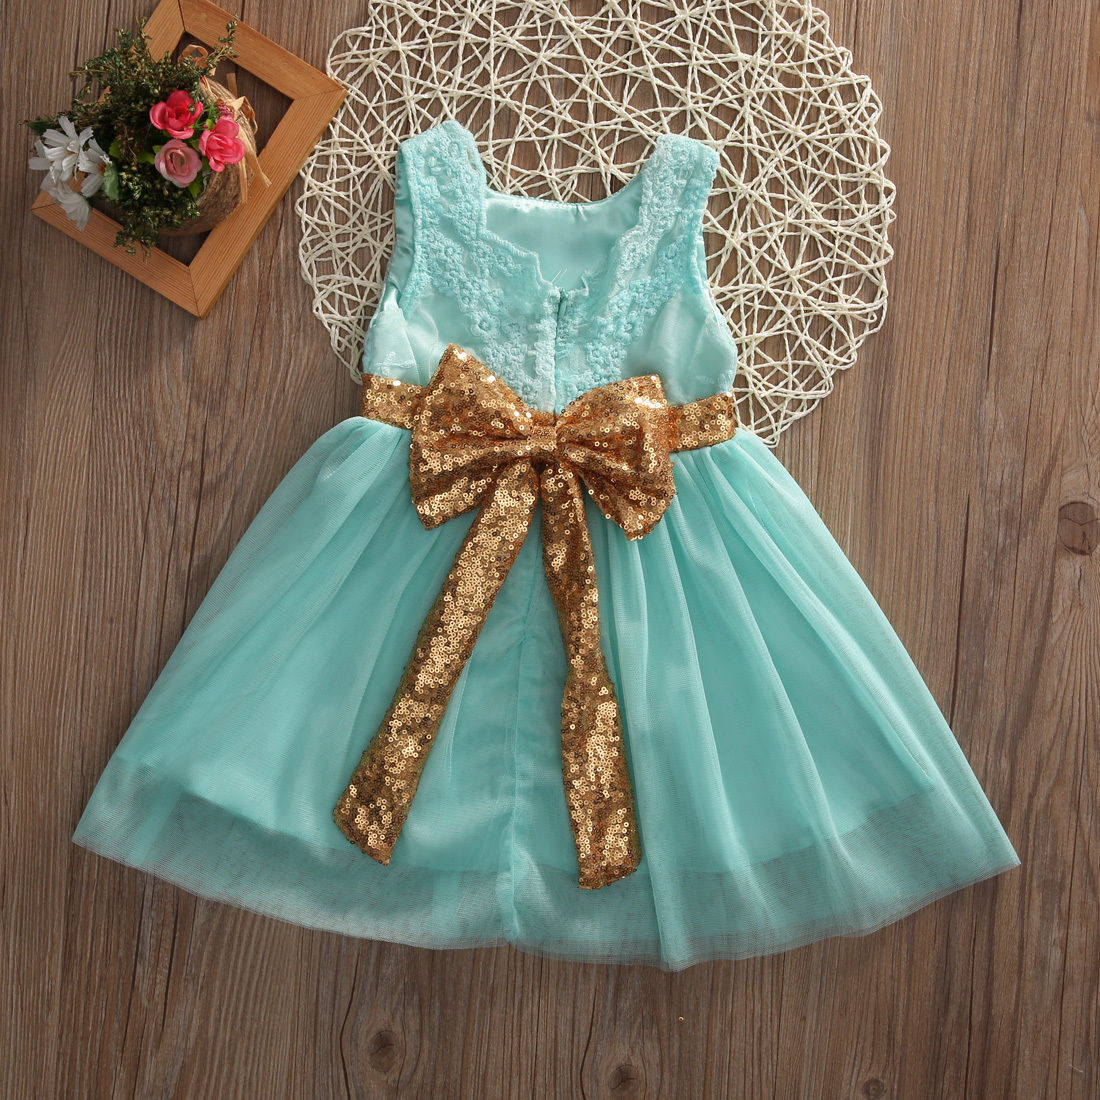 2017 new arrival Flower Princess Sequins Girl Dress Toddler Wedding Fancy Party Tutu Dresses 2-7years Kids girls clothes talent 32 мм